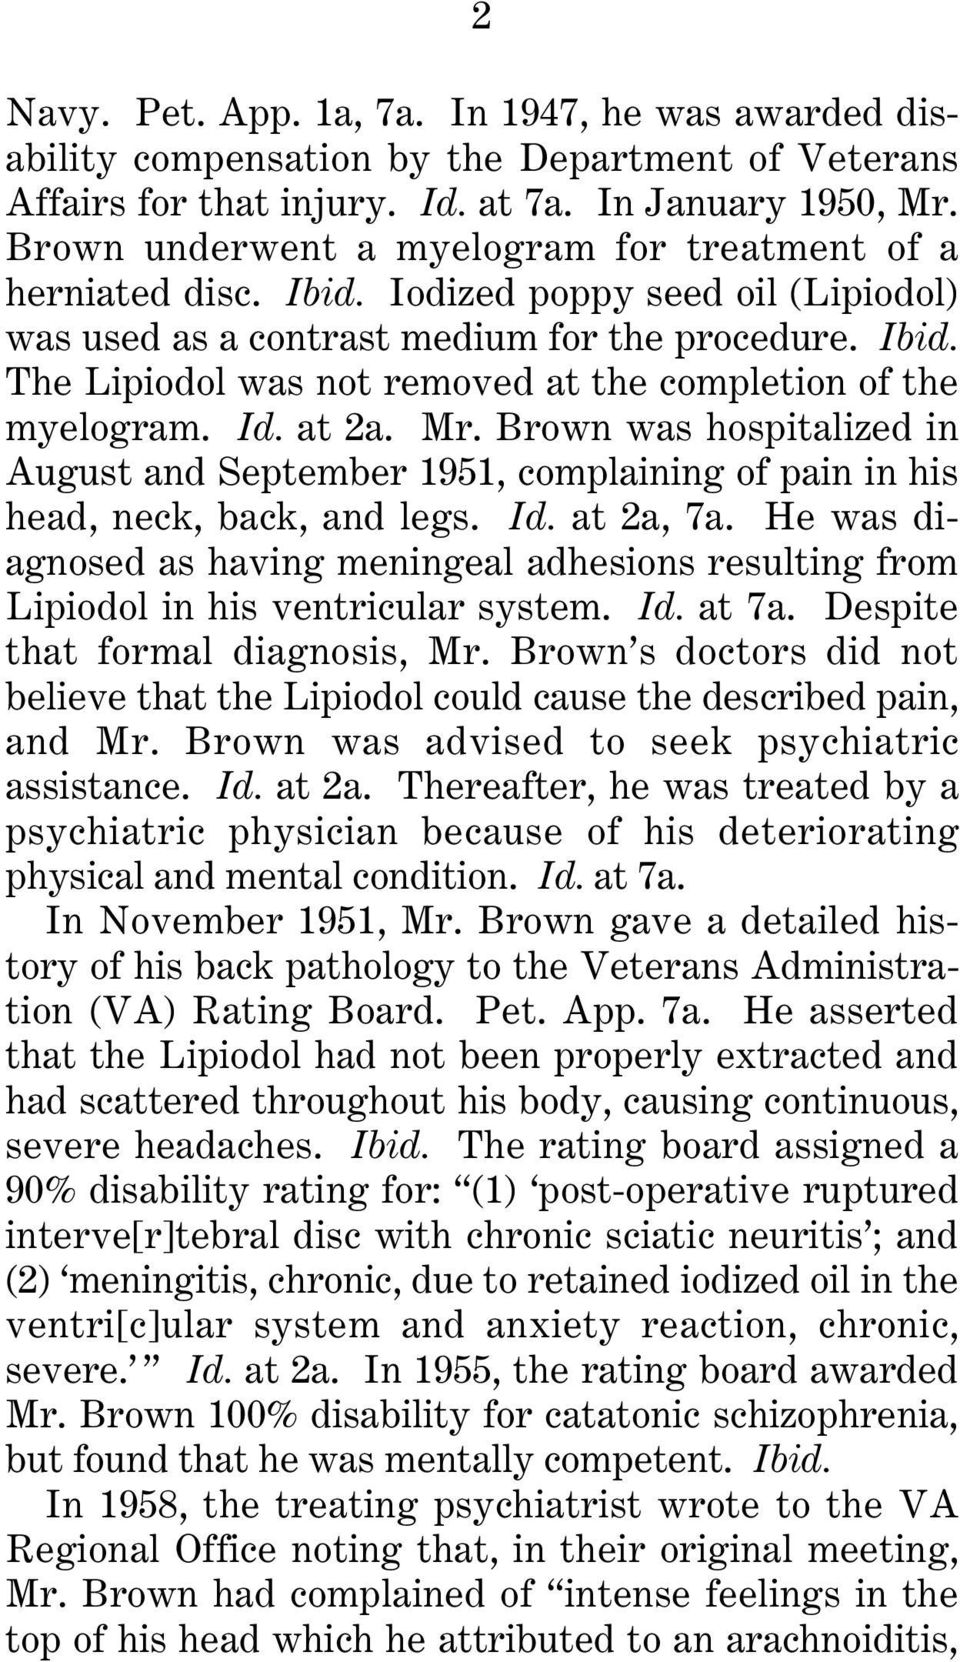 Id. at 2a. Mr. Brown was hospitalized in August and September 1951, complaining of pain in his head, neck, back, and legs. Id. at 2a, 7a.